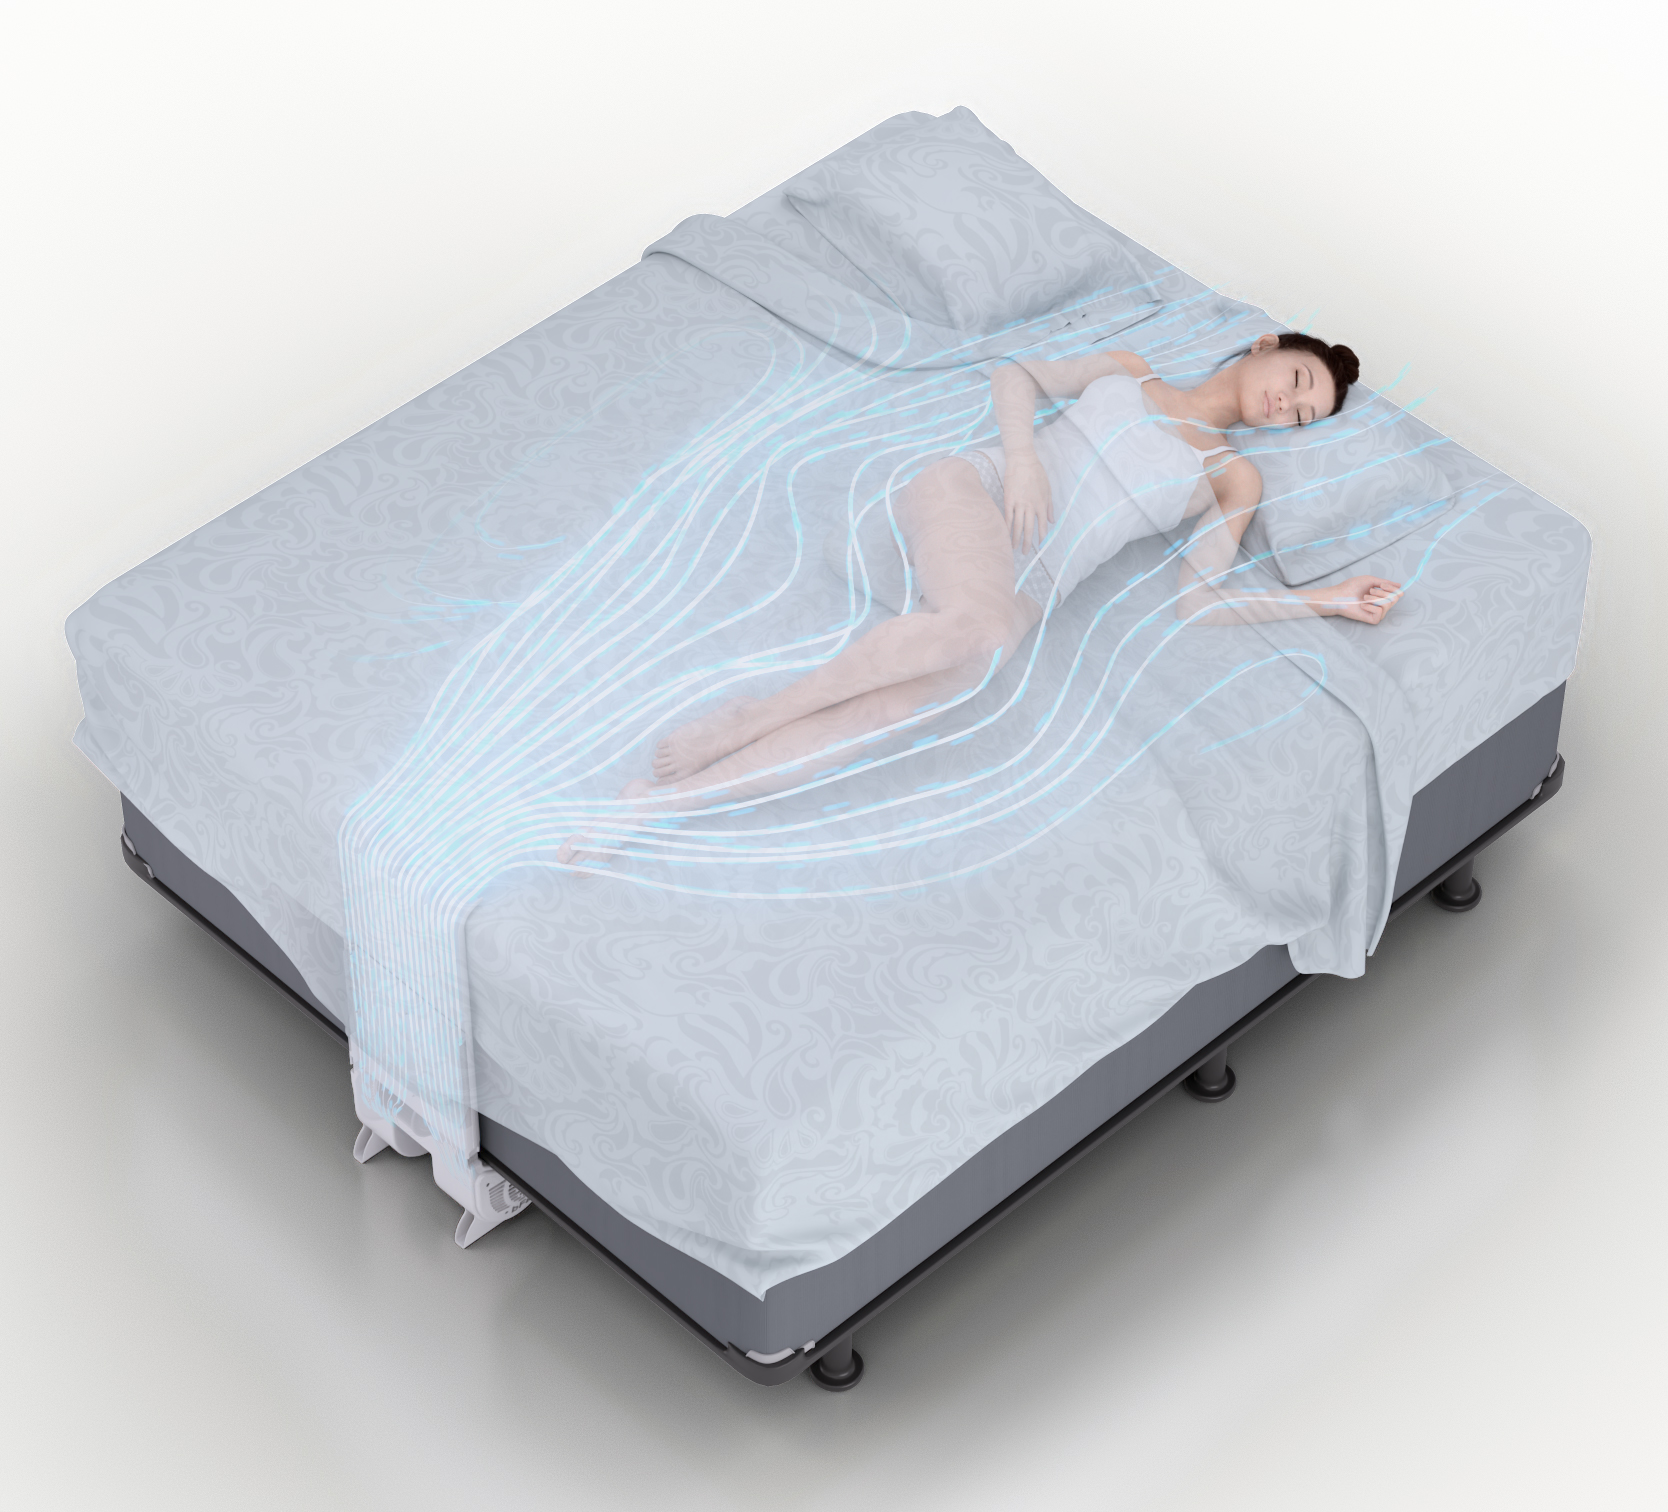 Bfan 174 And Original Bedfan Personal Cooling System For